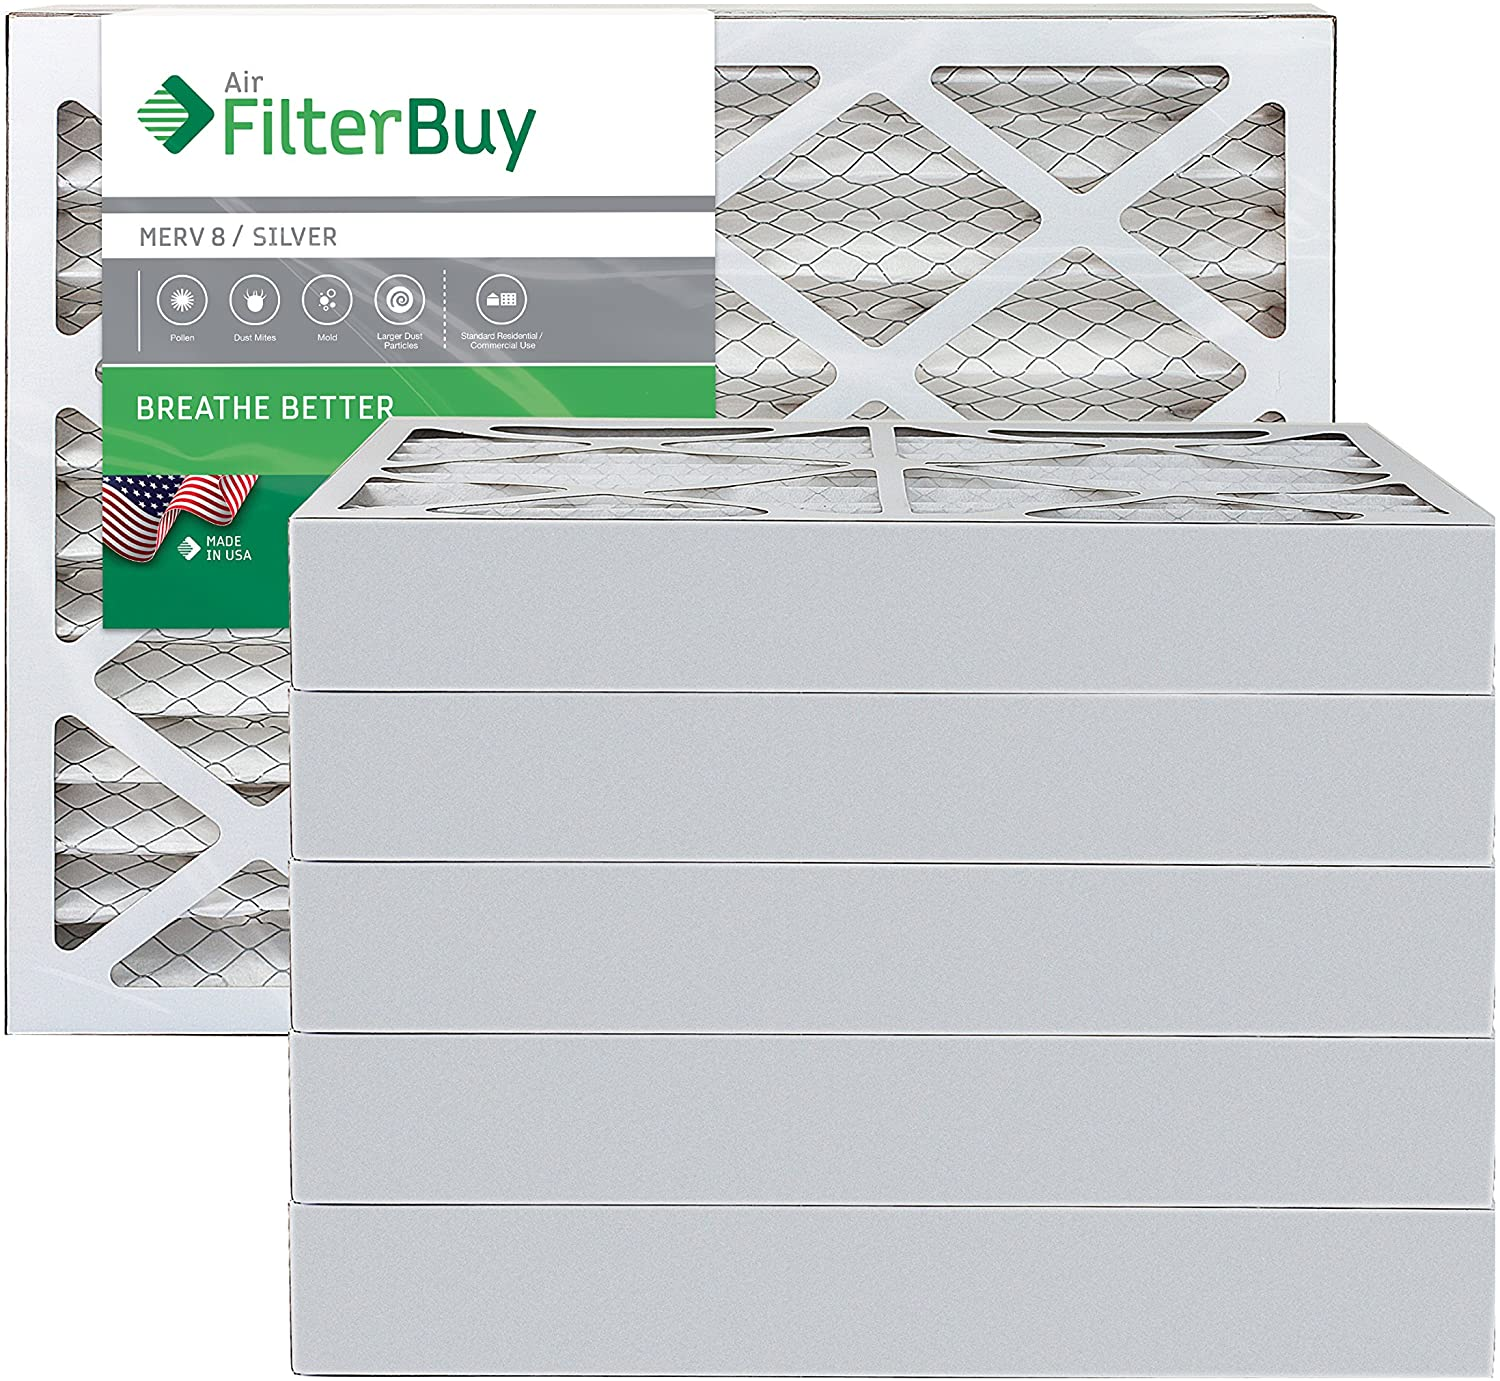 FilterBuy 18x20x4 MERV 8 Pleated AC Furnace Air Filter, (Pack of 6 Filters), 18x20x4 – Silver